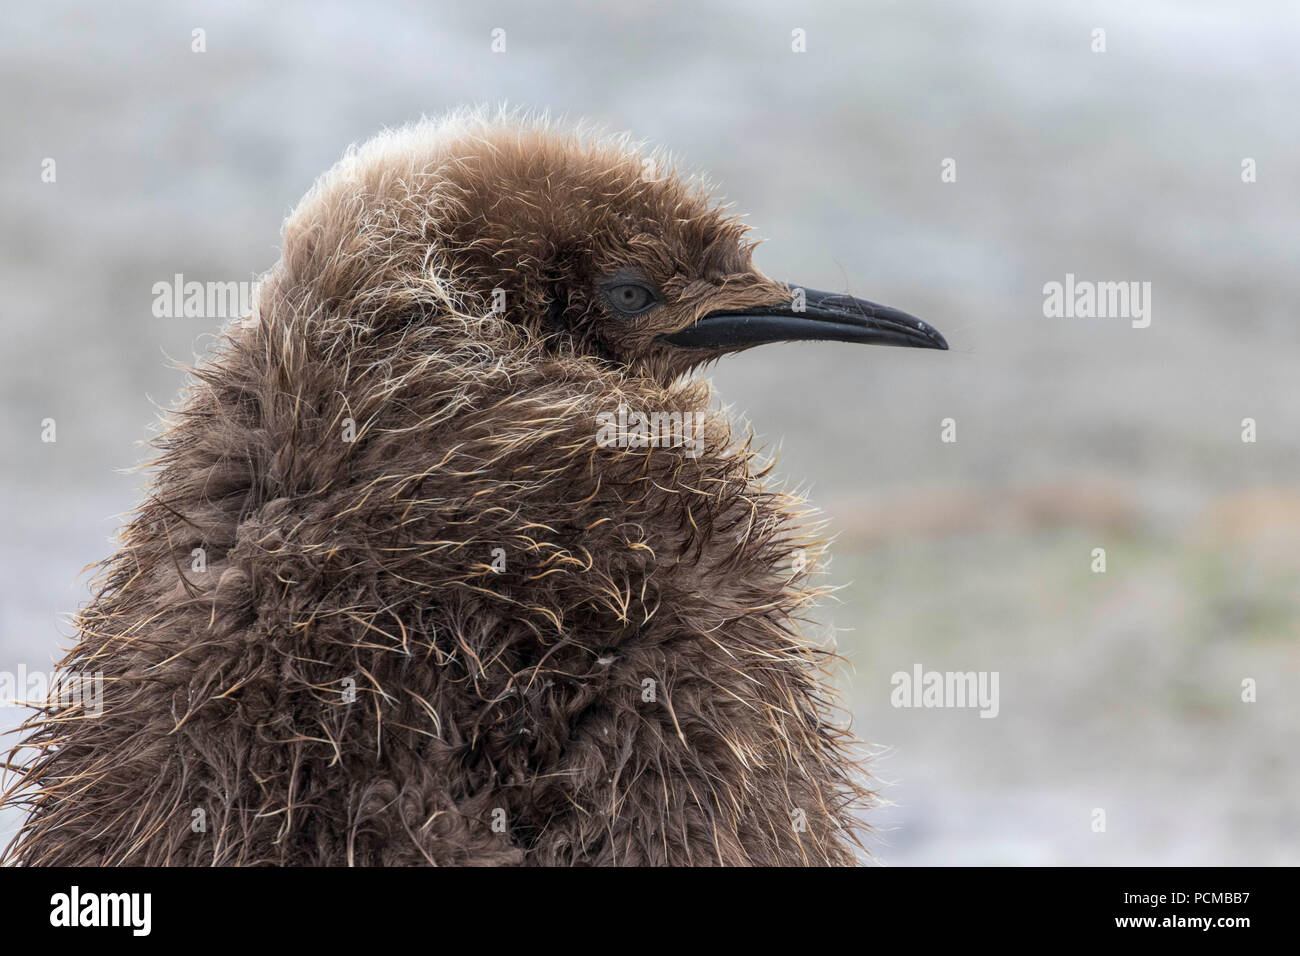 Young king penguin chick in the Falkland Islands - Stock Image